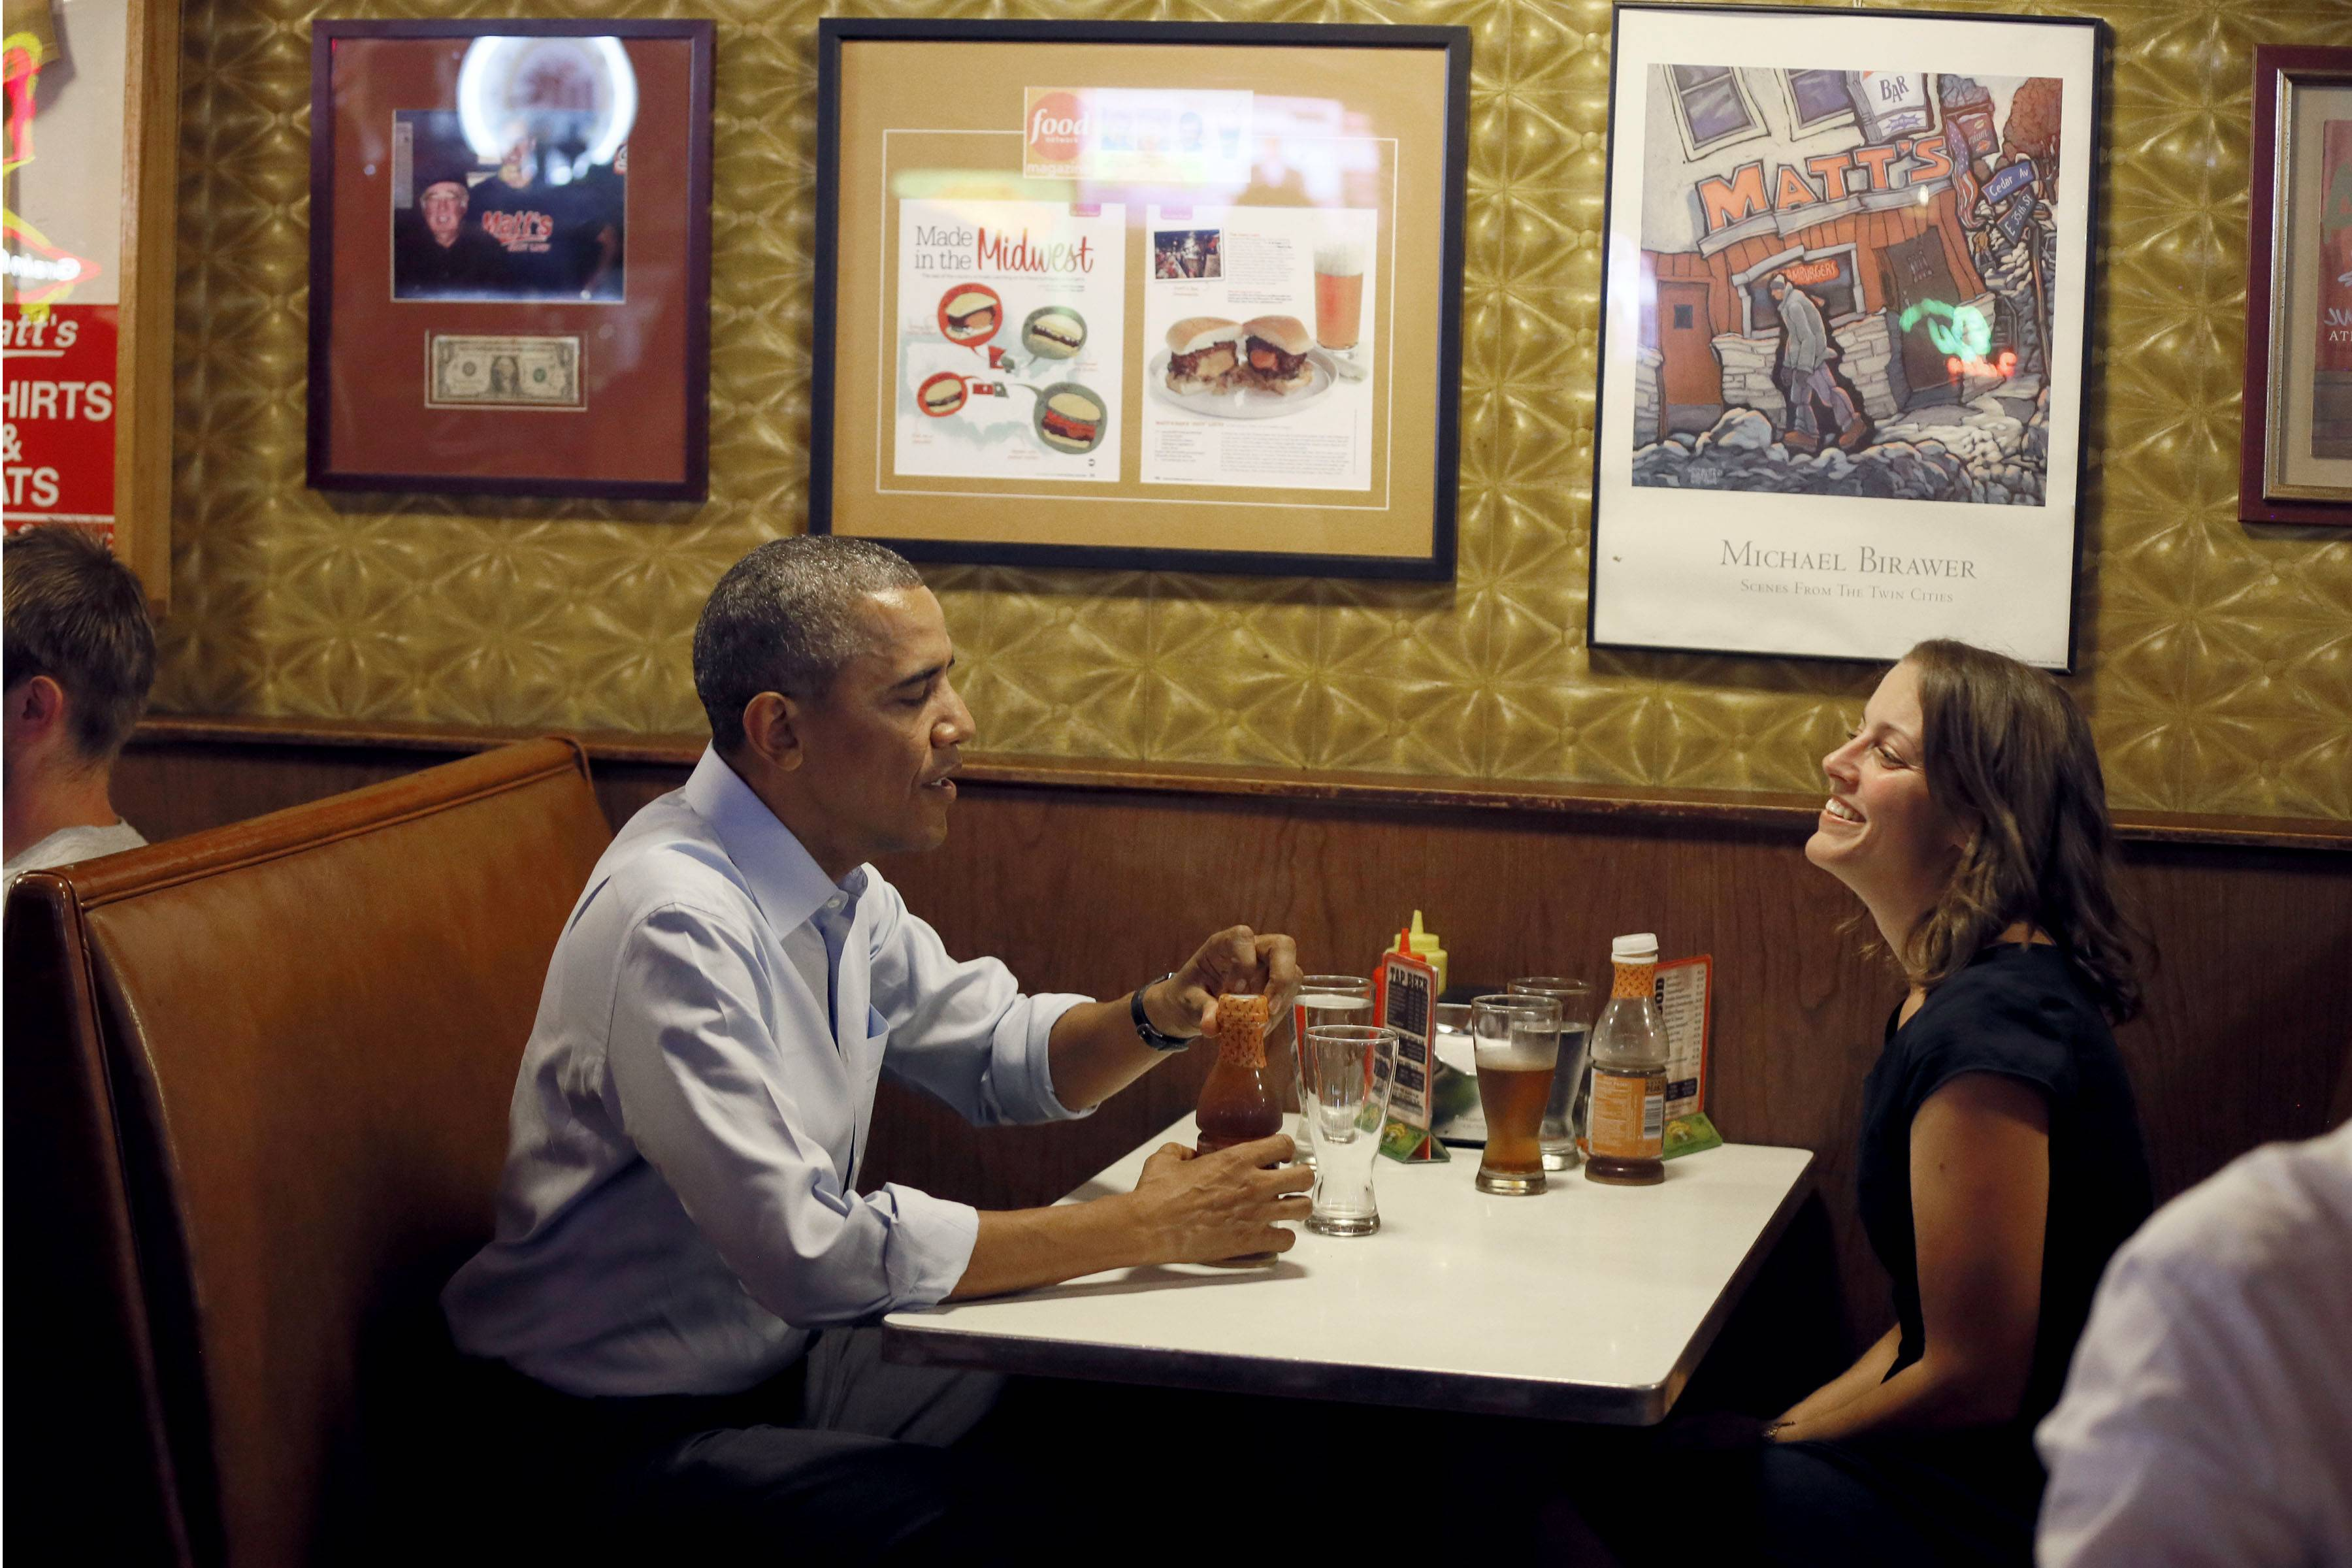 President Barack Obama talks with Rebekah Erler, of Minneapolis, at Matts Bar before going to a town hall meeting in Minneapolis Thursday. The president was in town for the first in a series of day-in-the-Life visits he plans to make across the country this summer.